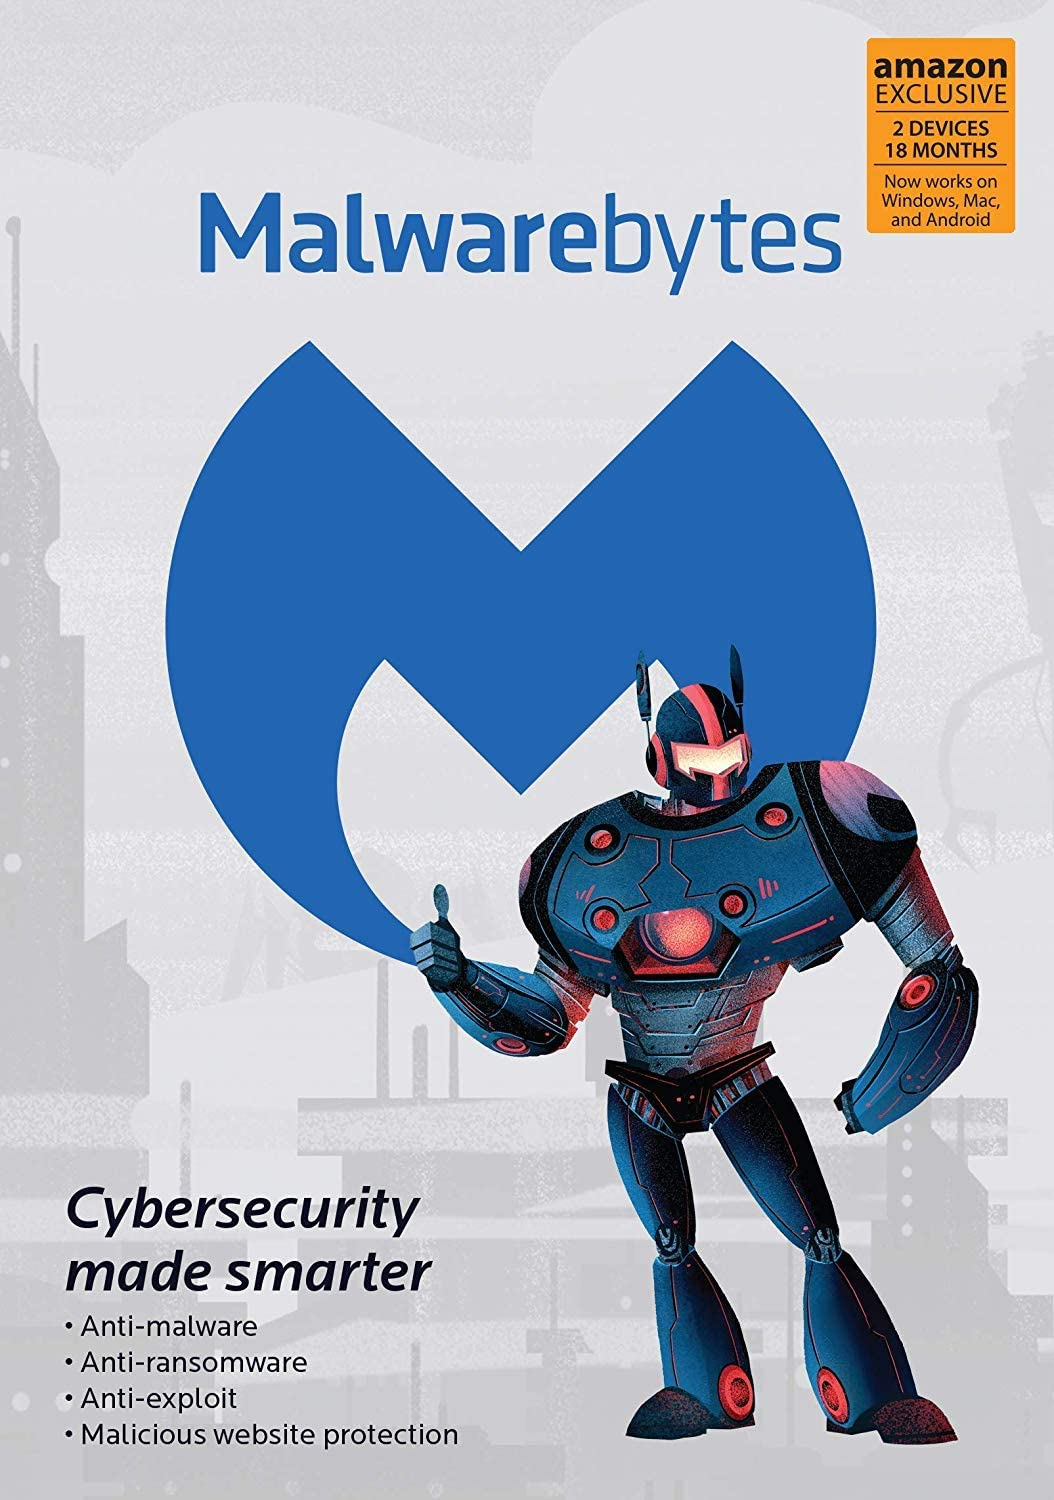 Malwarebytes | Amazon Exclusive | 18 Months, 2 Devices | PC, Mac, Android [Online Code] 71-0Zr37znL